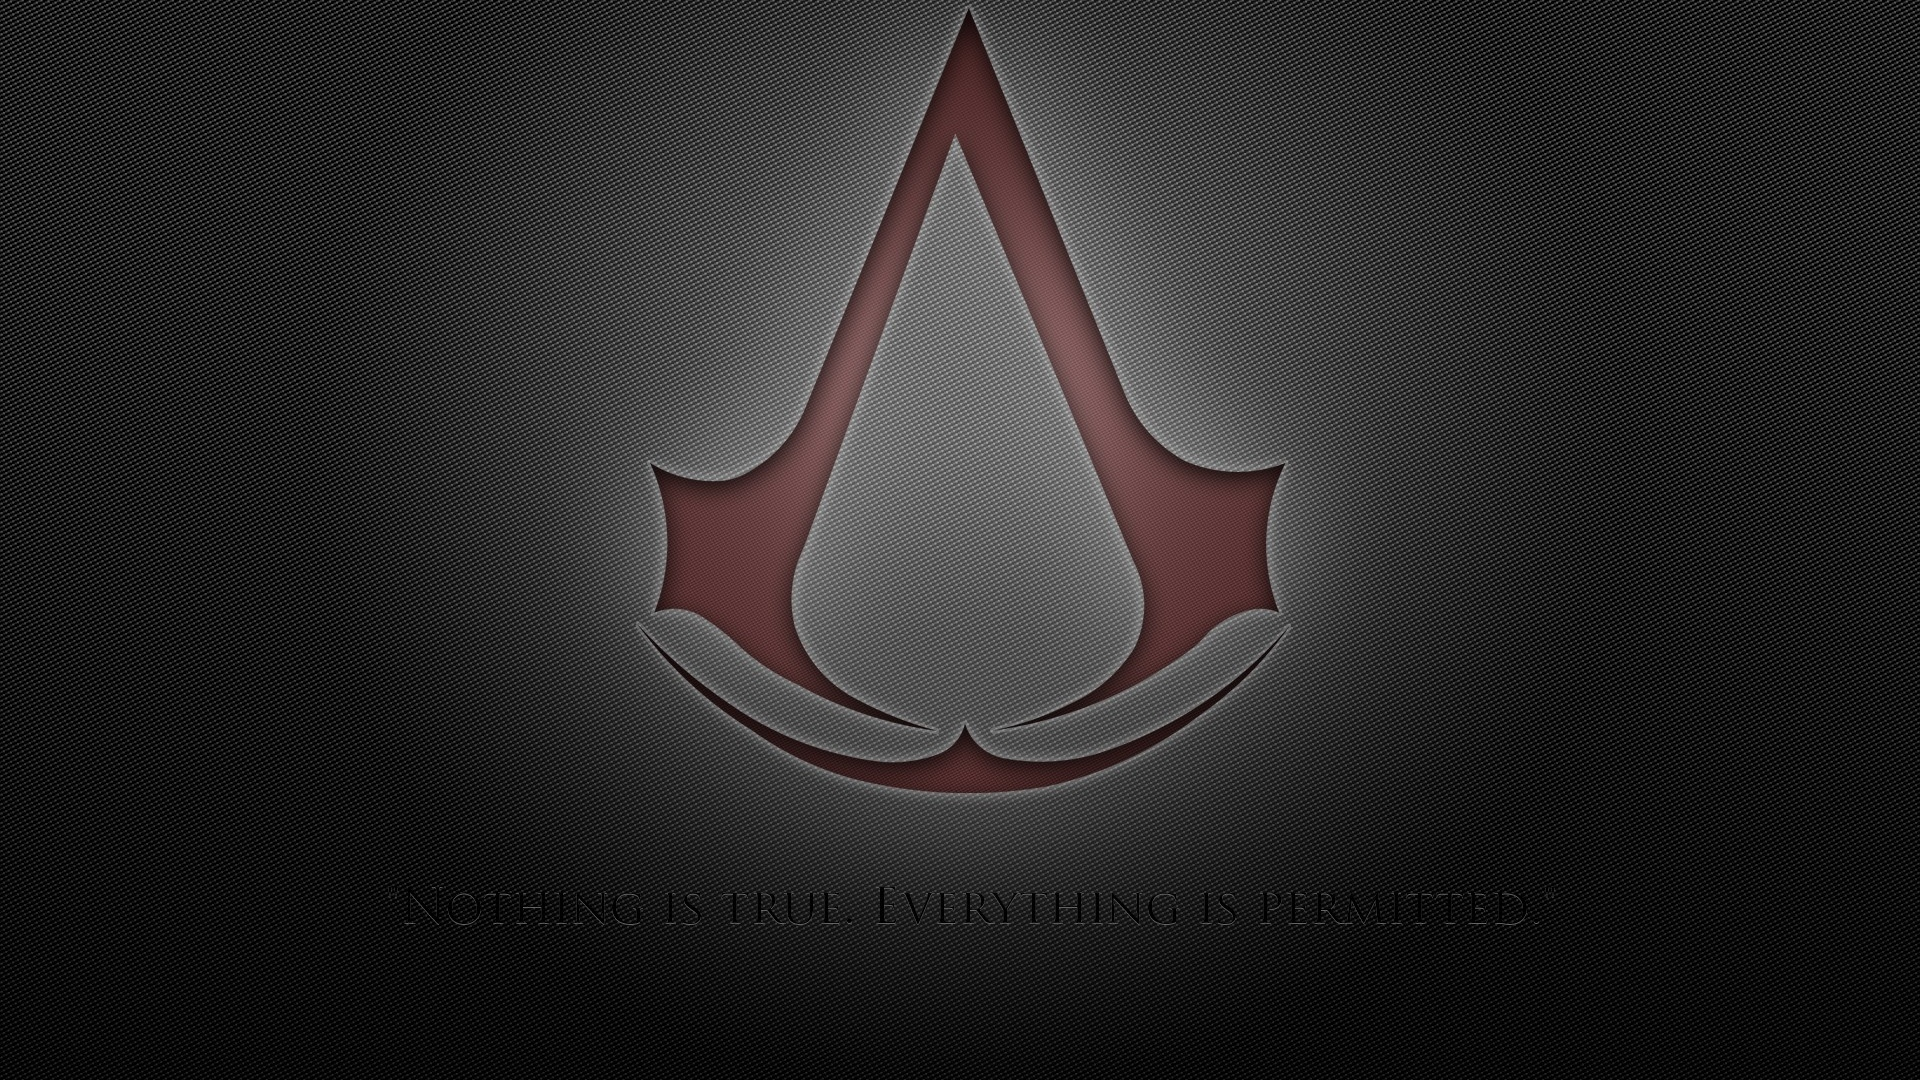 download wallpaper 1920x1080 assassins creed, assassins symbol, red